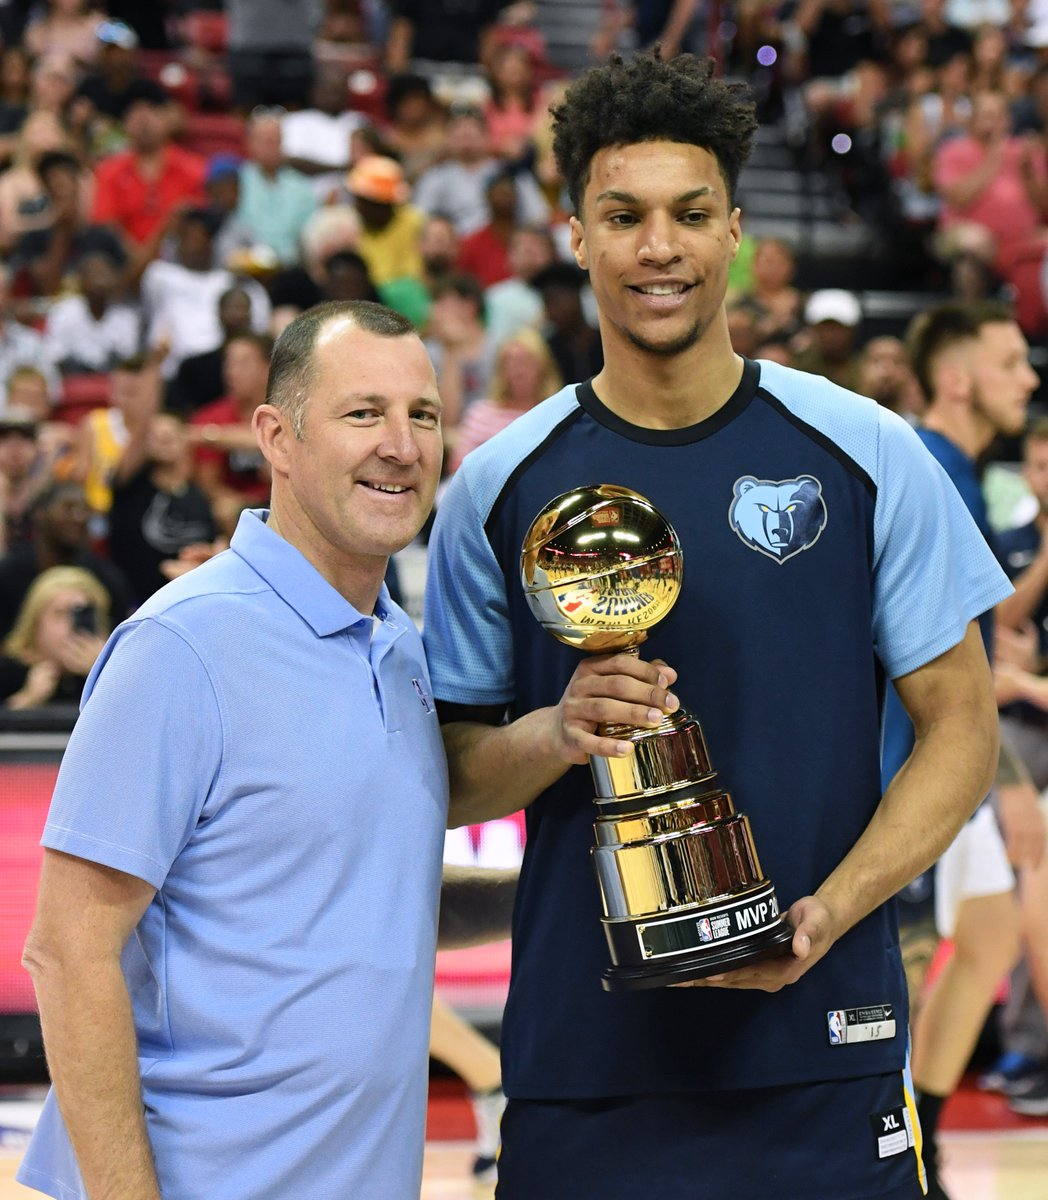 Brandon Clarke stacks up the hardware with the 2019 #NBASummer League MVP and the Championship Game MVP trophies! #NBARooks